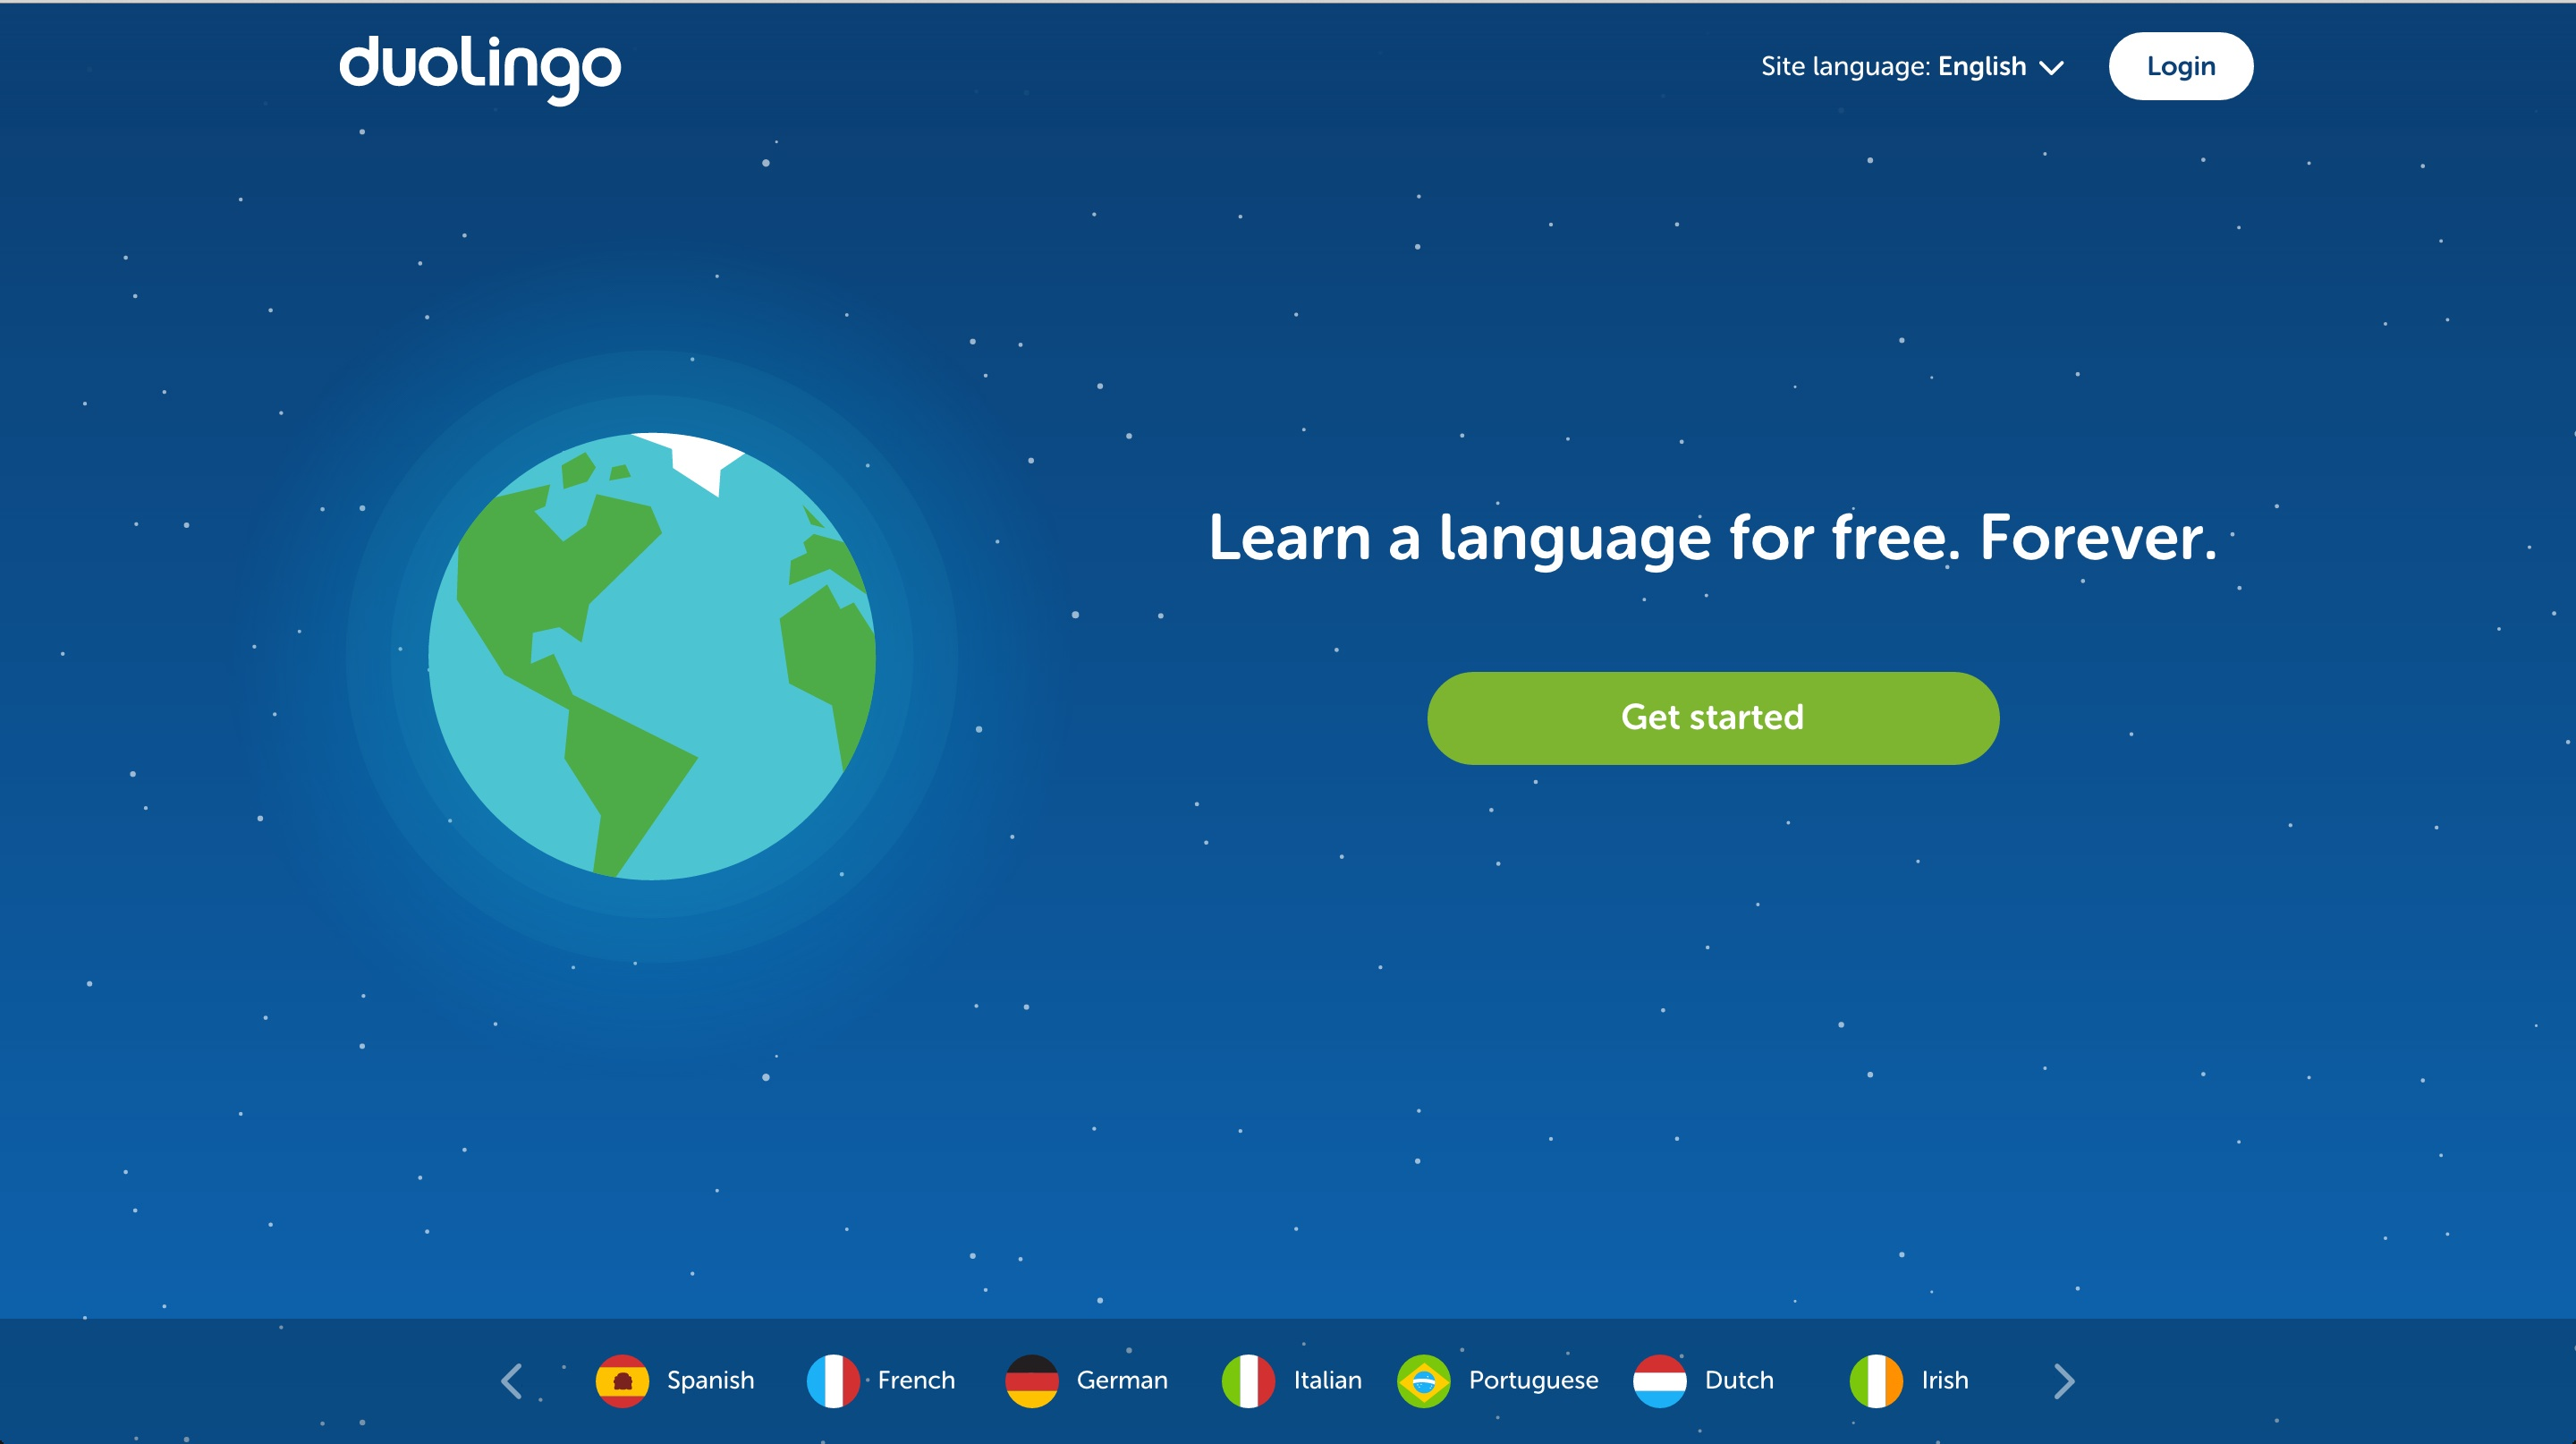 duolingo user onboarding step 1